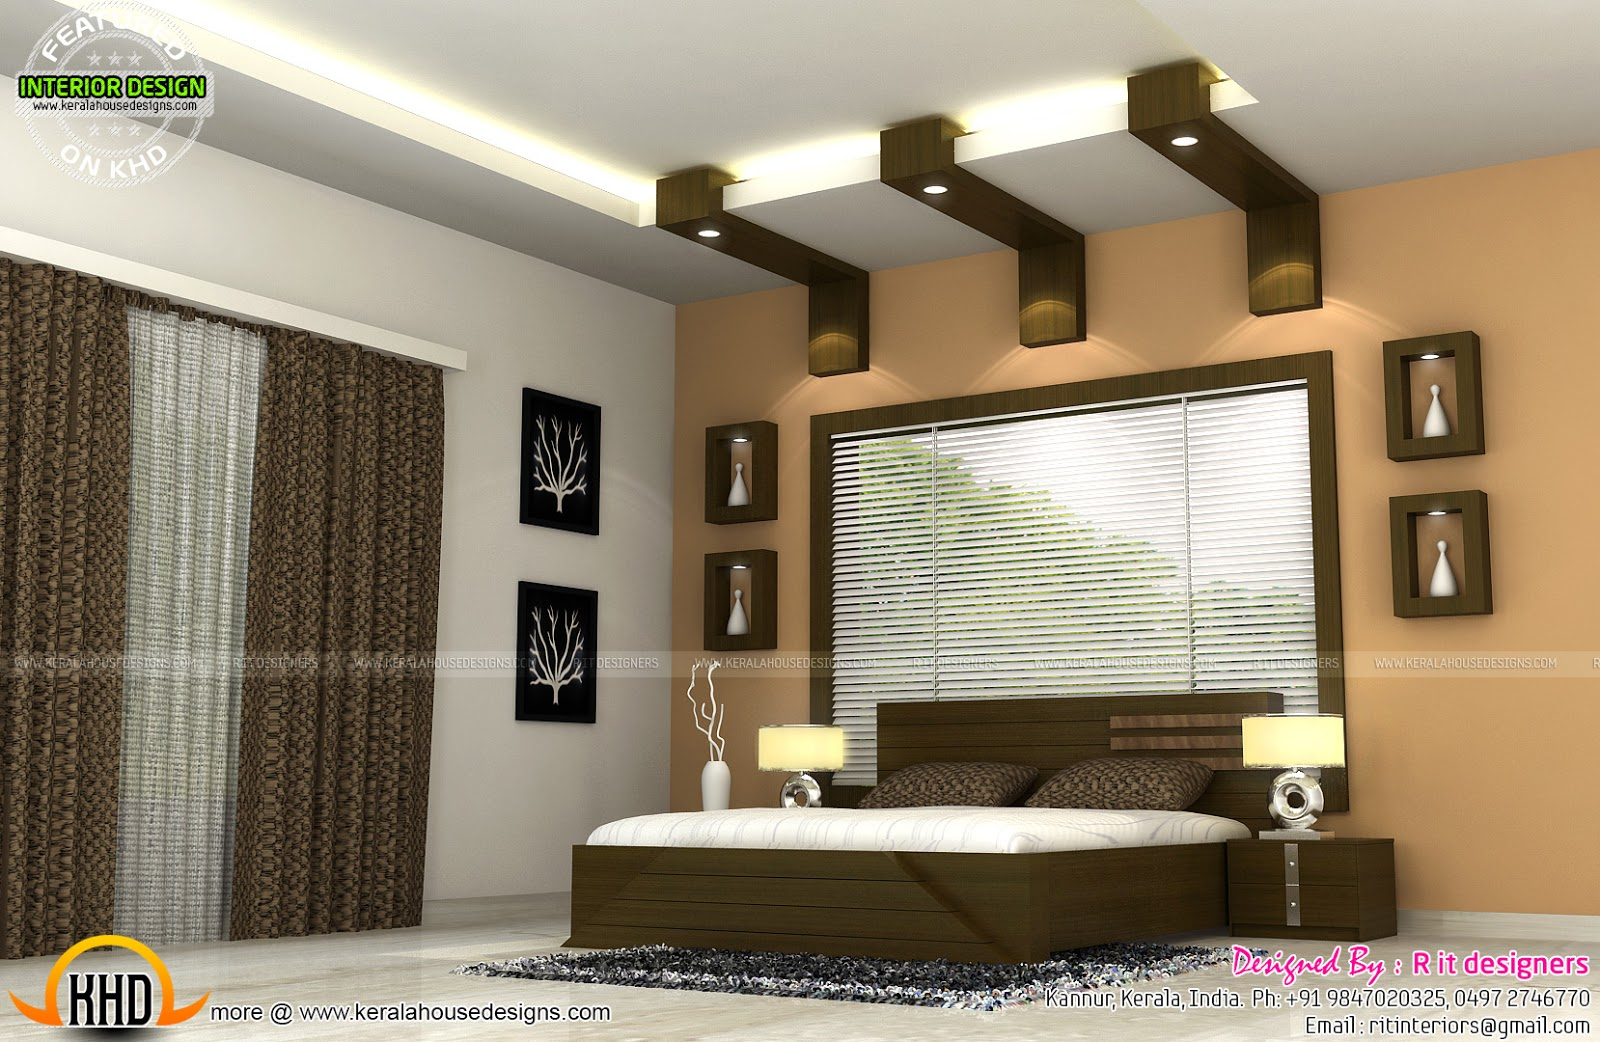 Interiors of bedrooms and kitchen kerala home design and for Home internal design